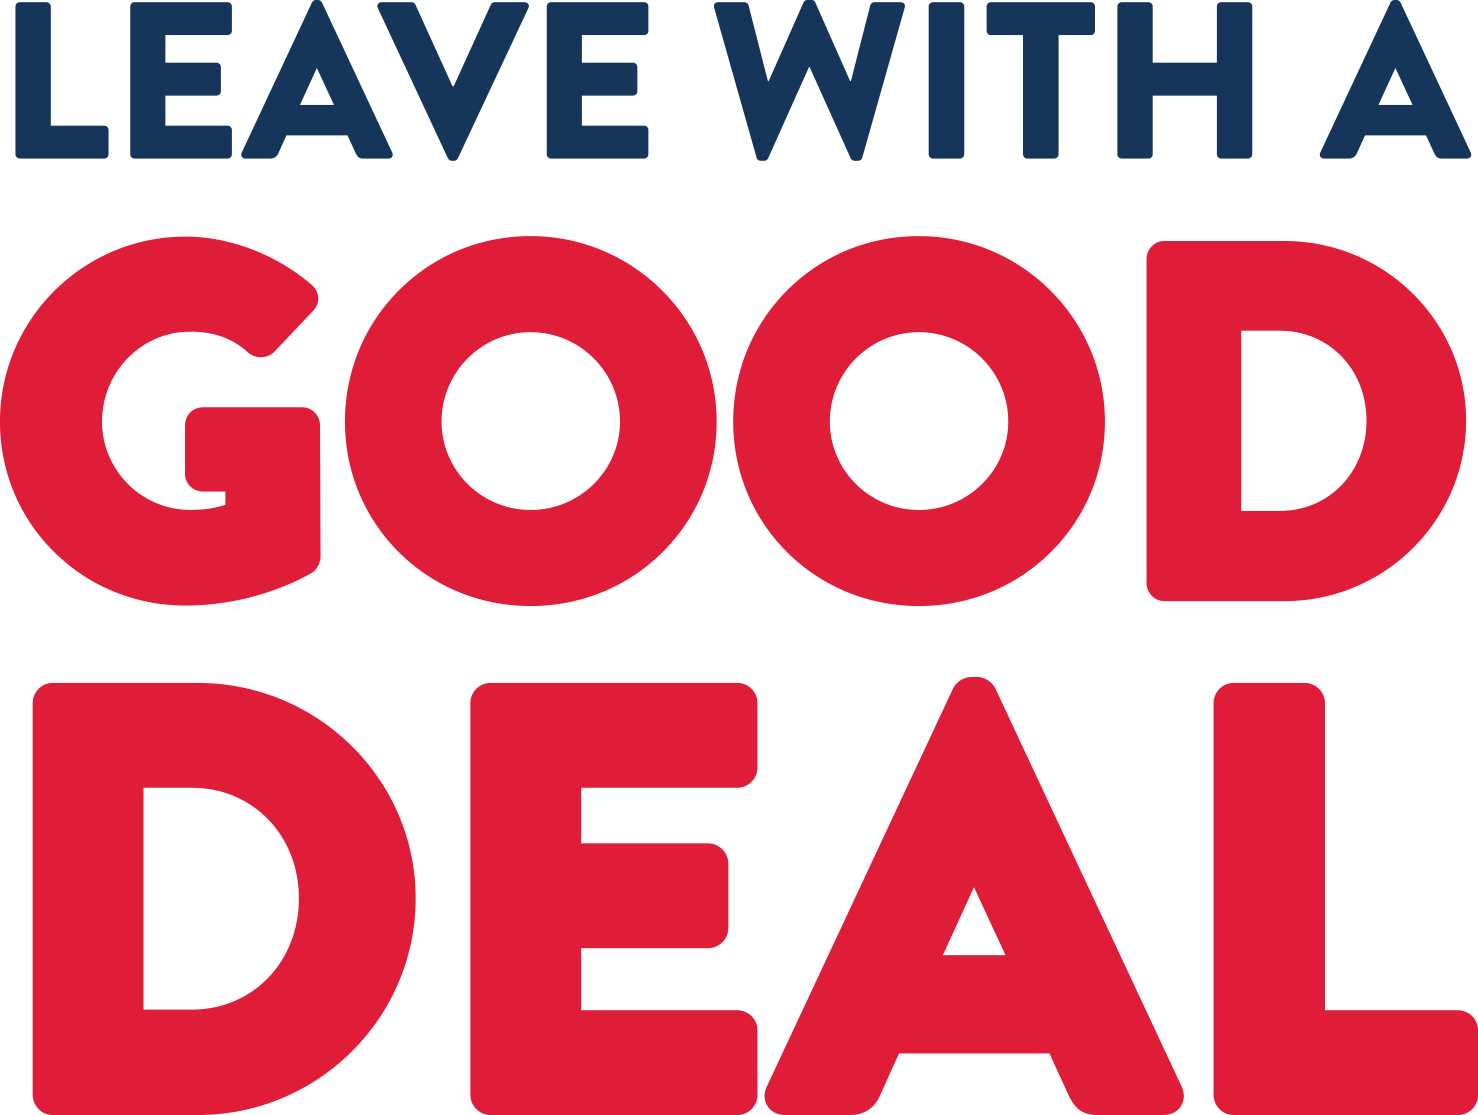 Leave with a good deal